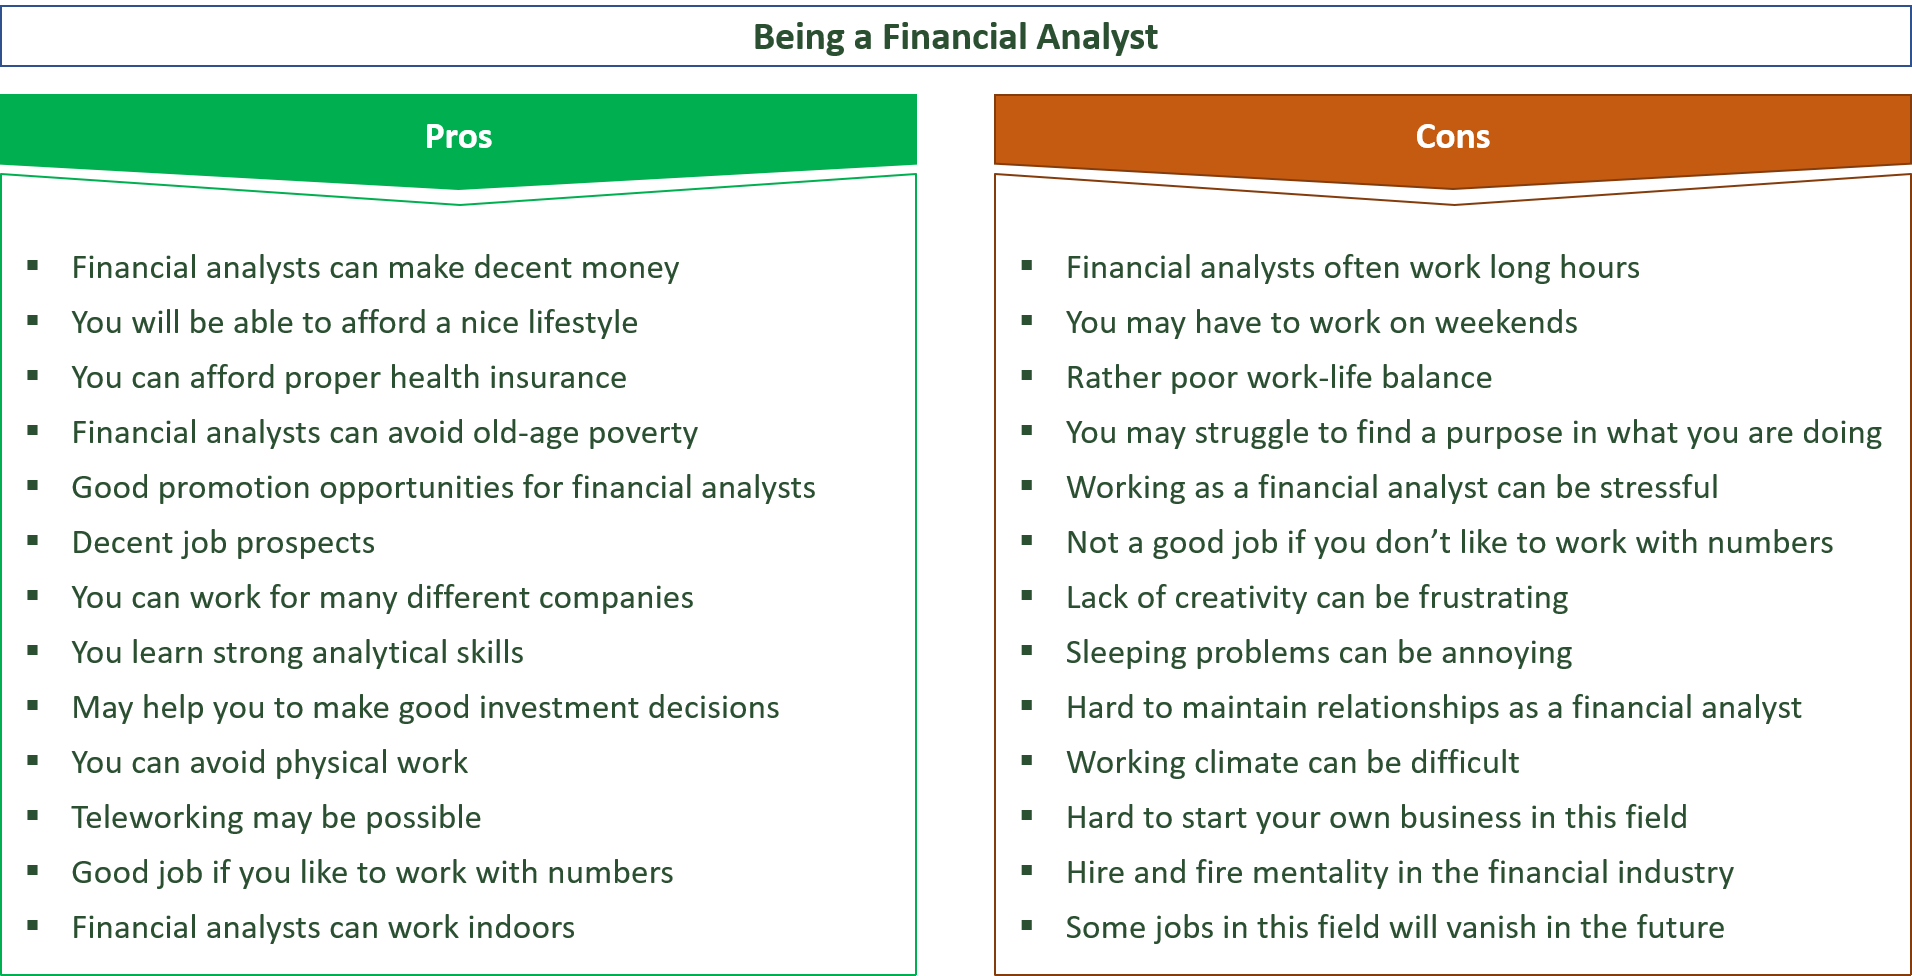 advantages and disadvantages of being a financial analyst